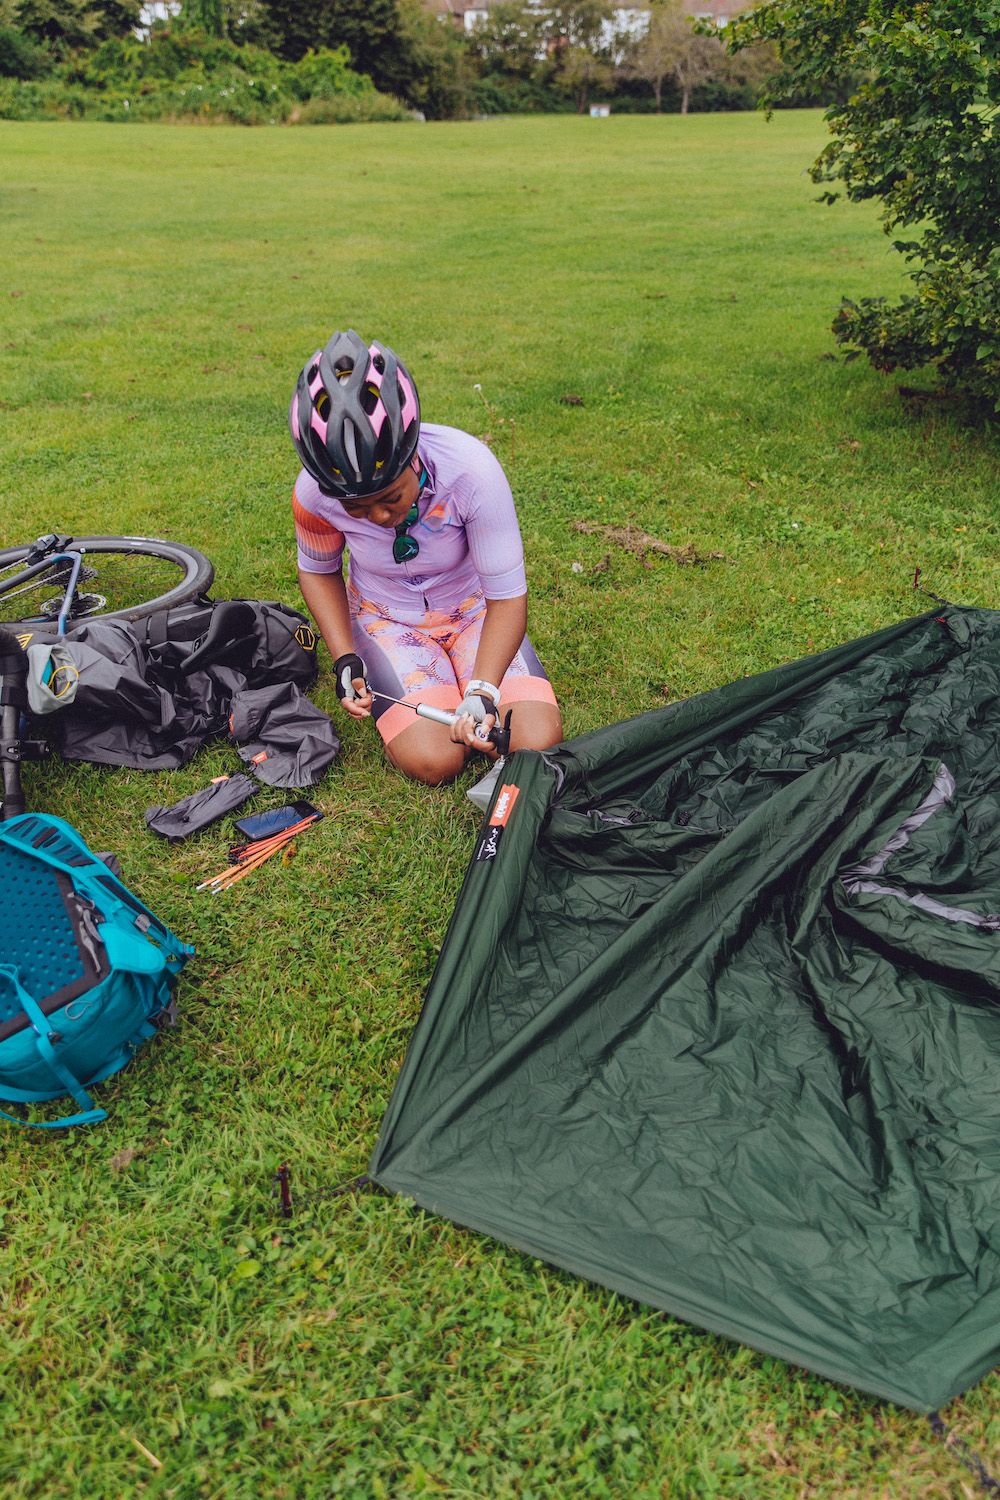 Practice Pitching Your Tent - Bikepacking For Beginners Tip